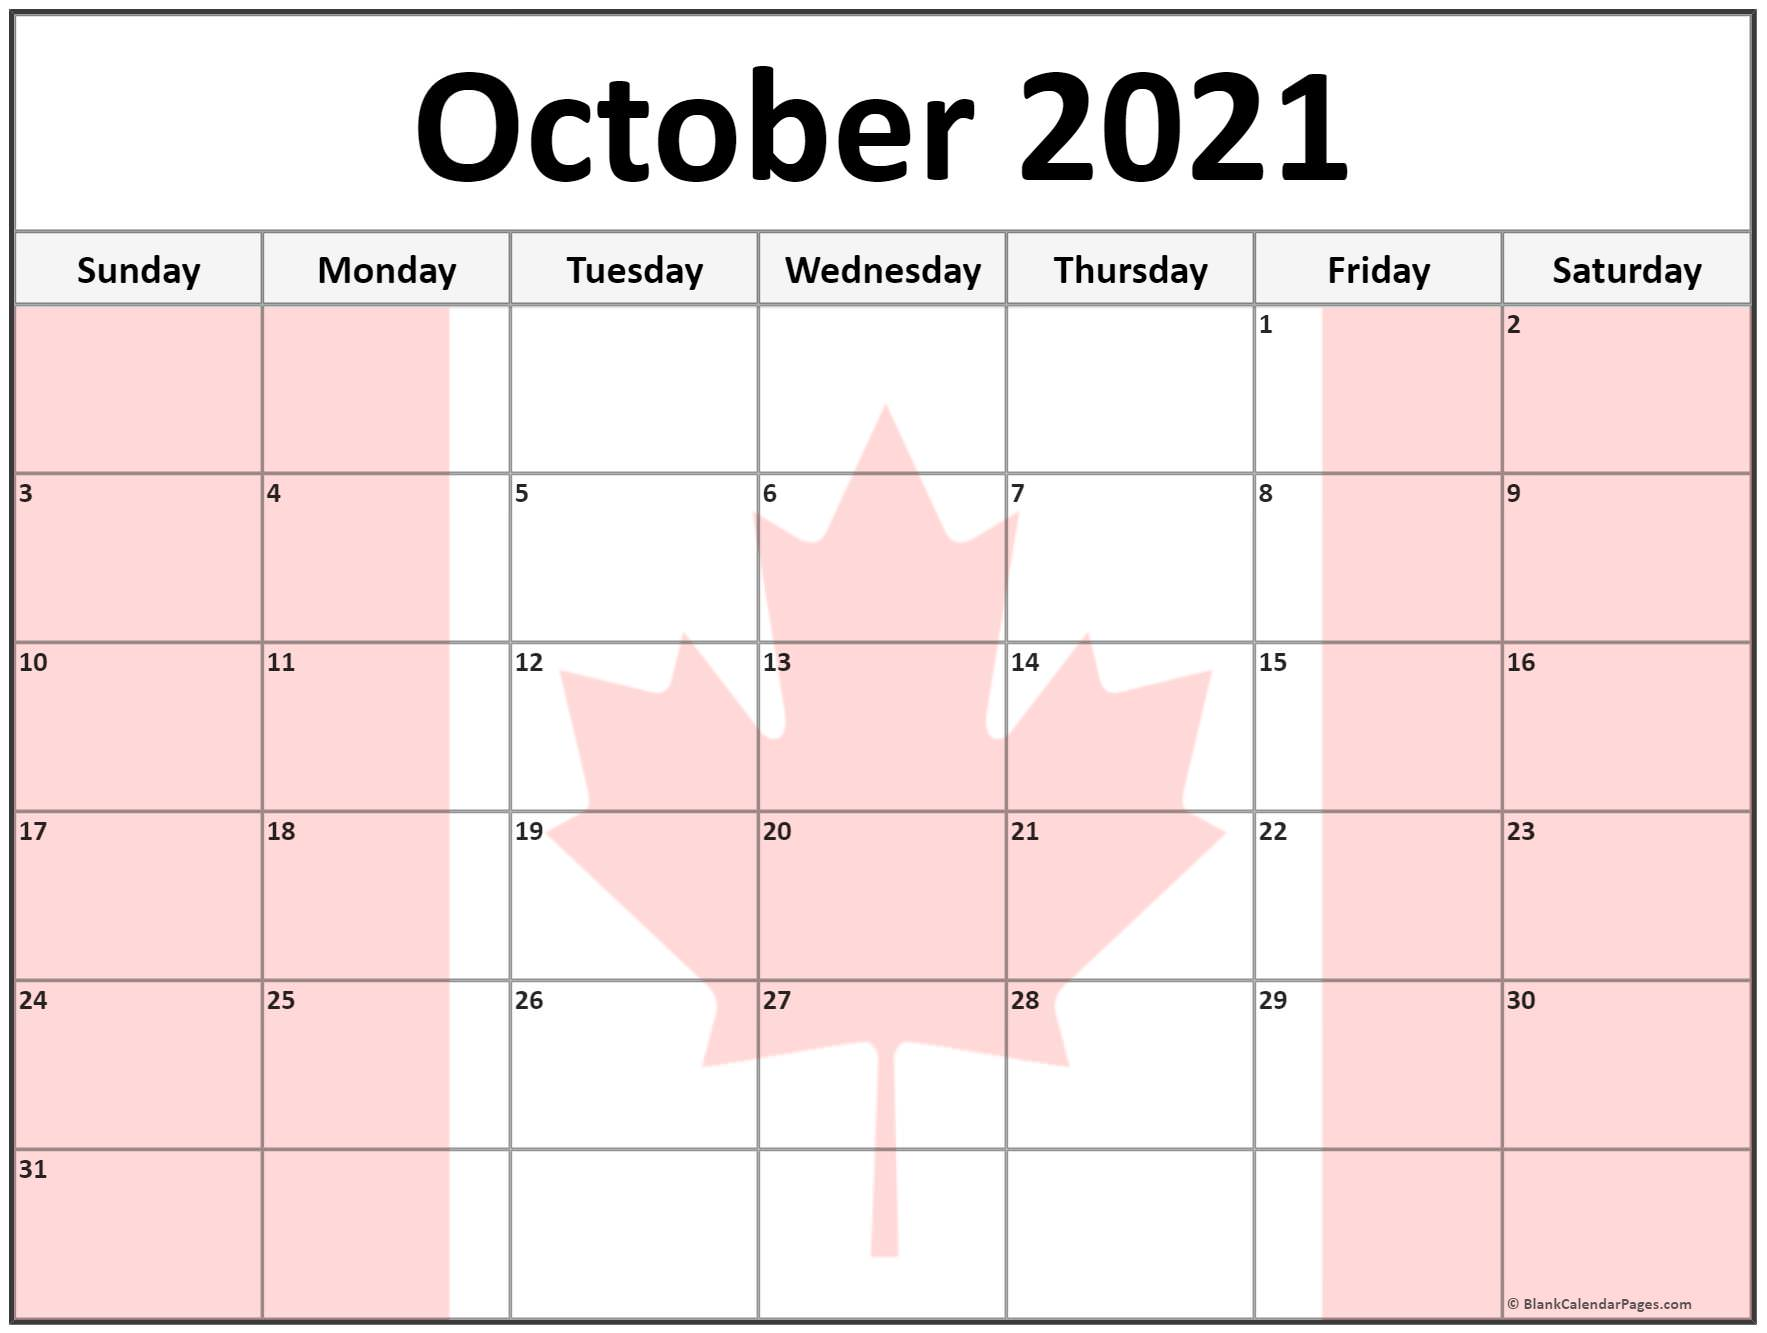 October 2020 Canada flag monthly calendar printout